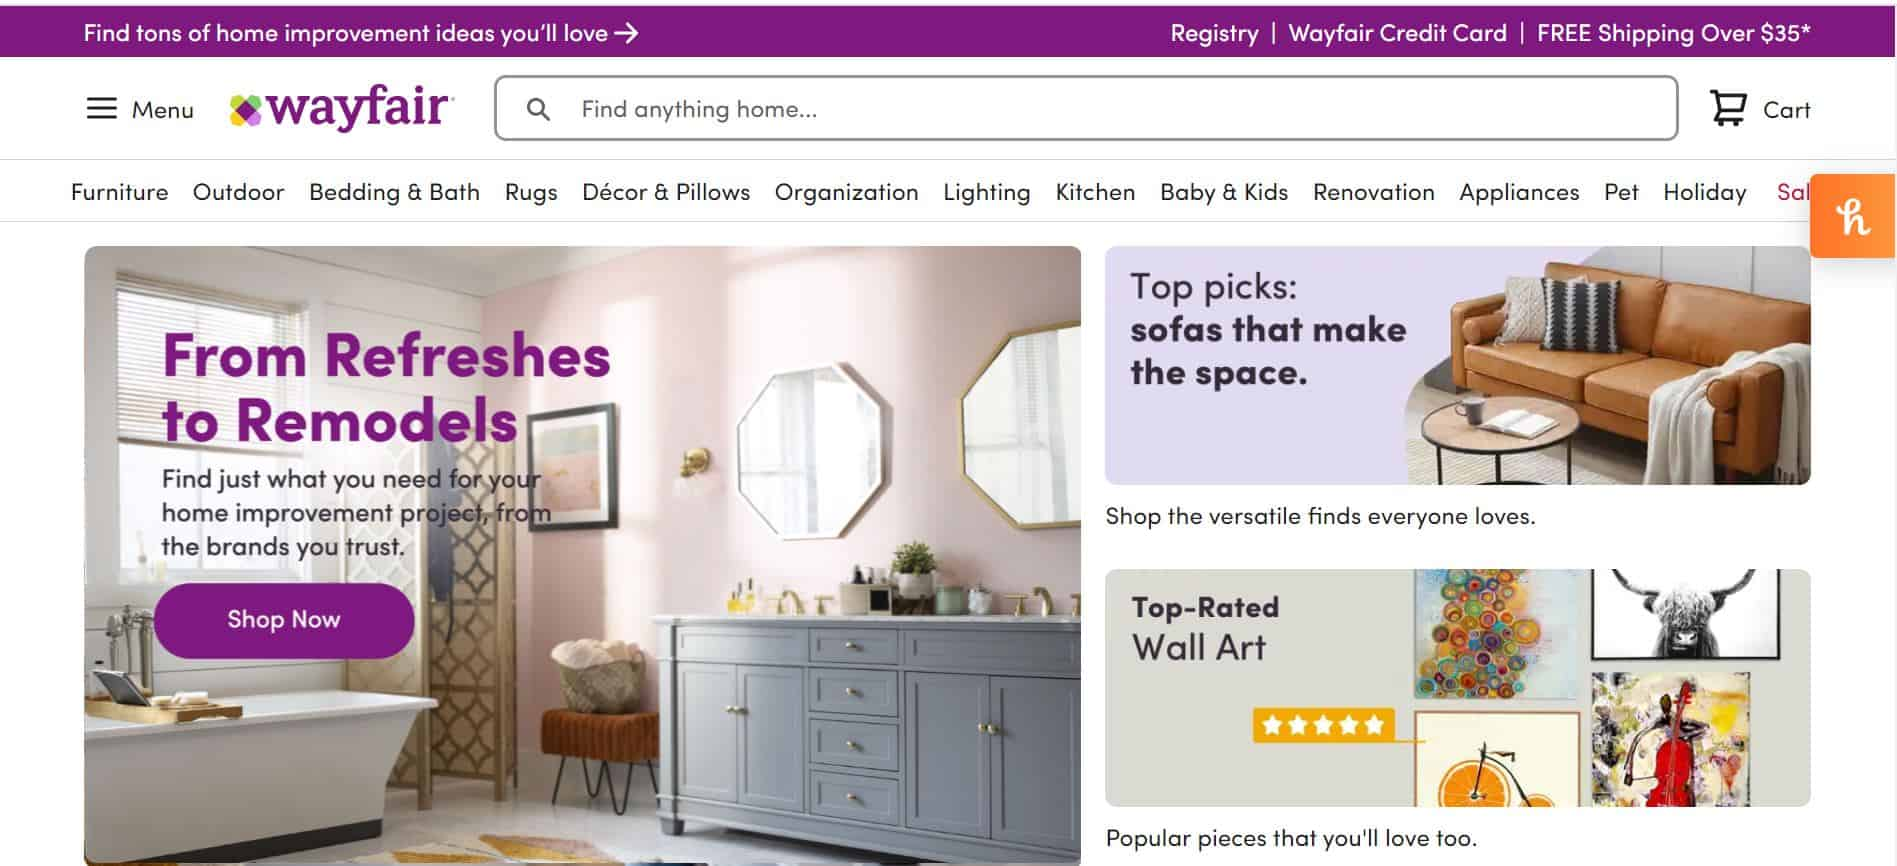 Wayfair Inc. provides free shipping and sells home store items.